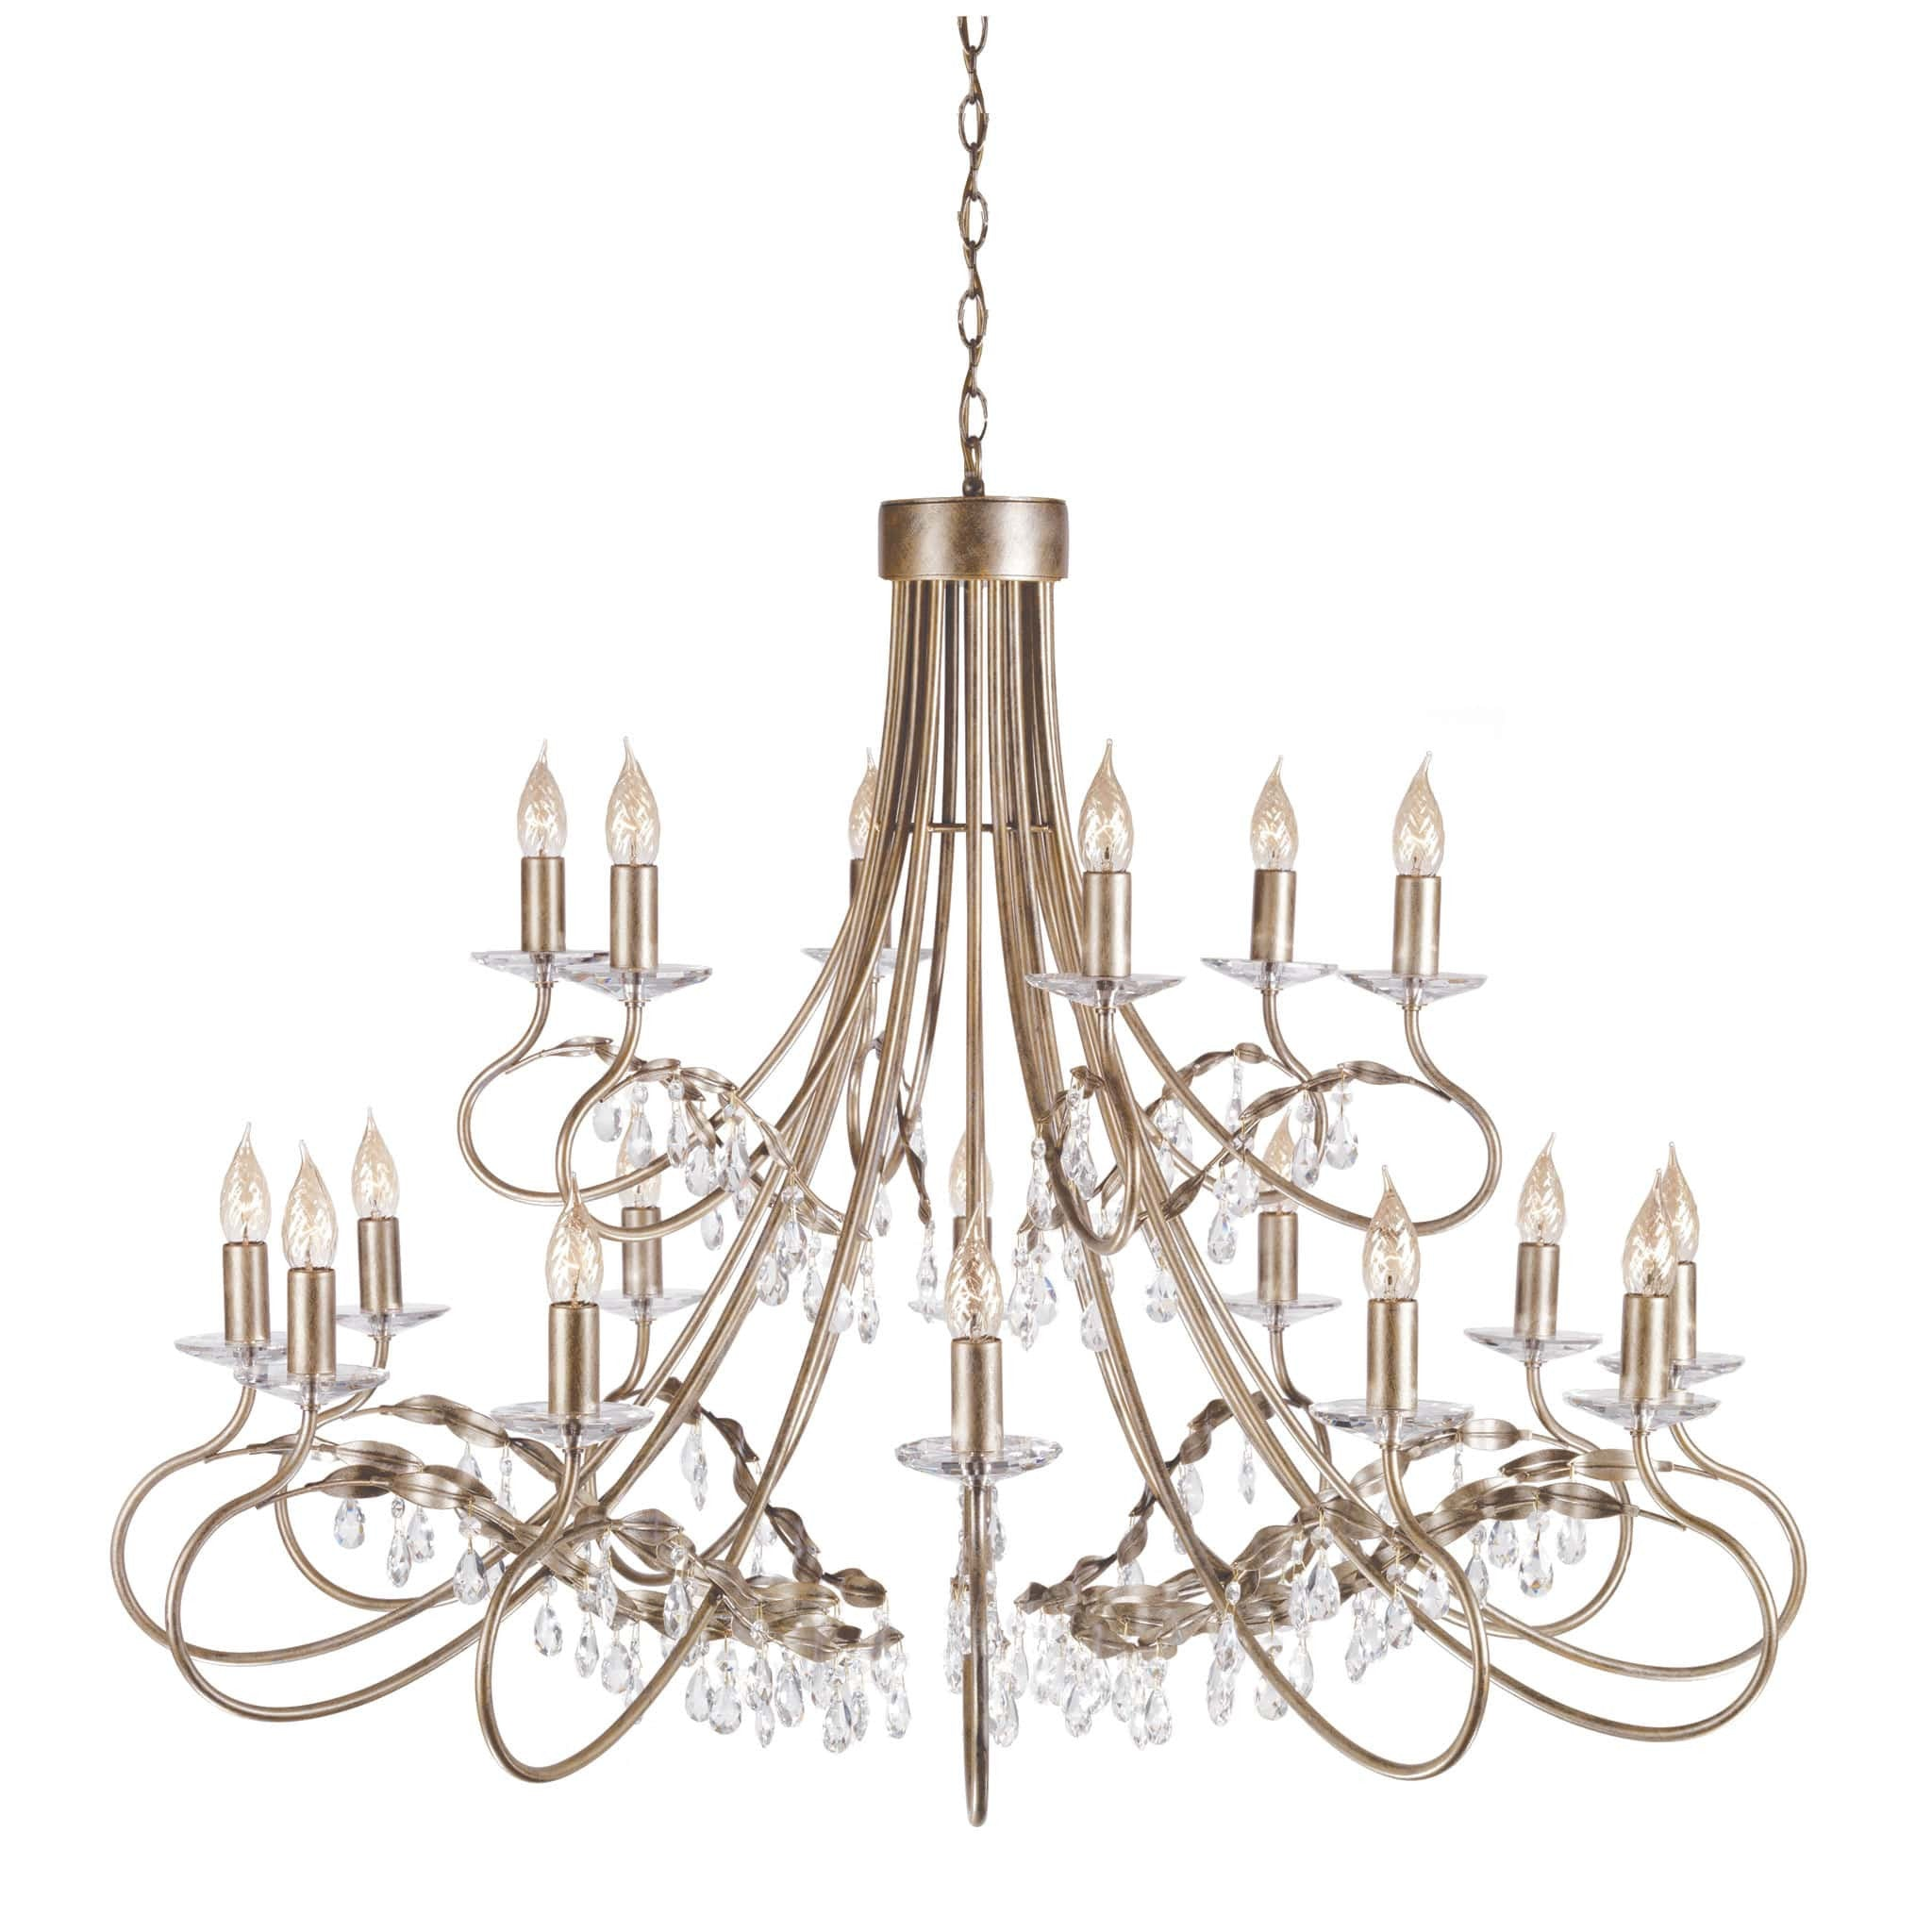 Elstead christina 18 light gold silver chandelier chandelier shack elstead christina 18 light gold silver candle chandelier crt18 silgold mozeypictures Image collections